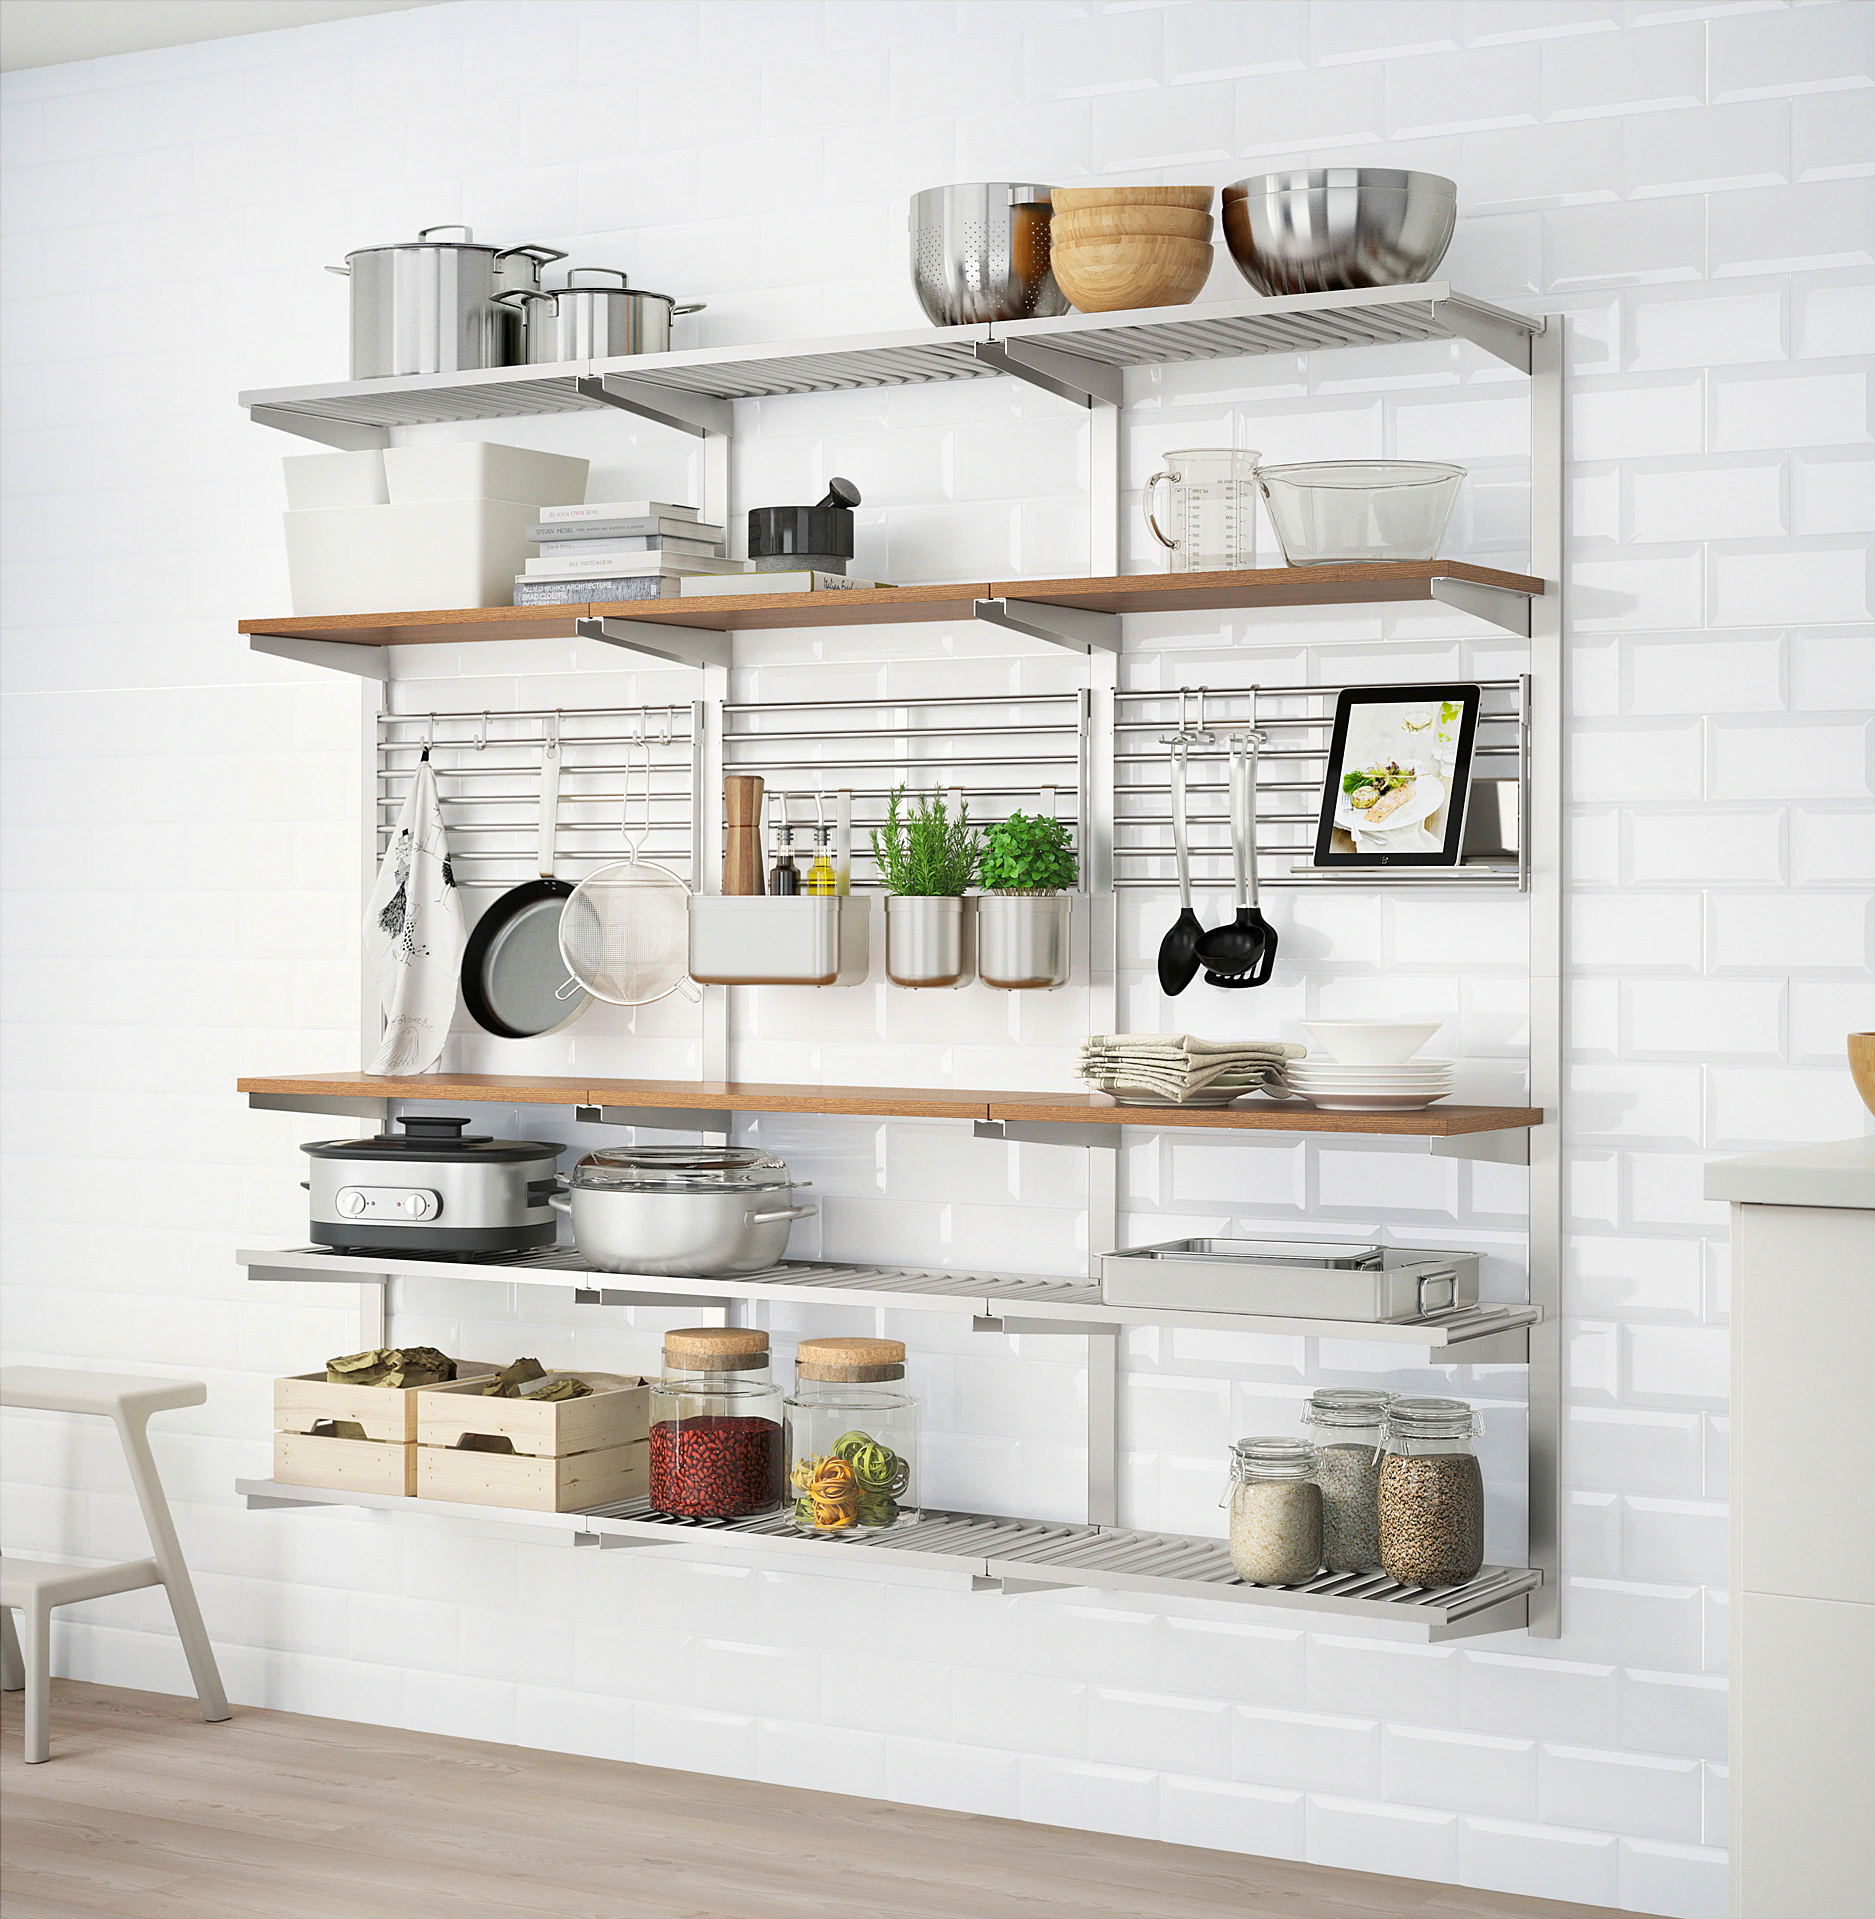 Ikea Kungsfors kitchen shelving. Open, exposed shelving has been a